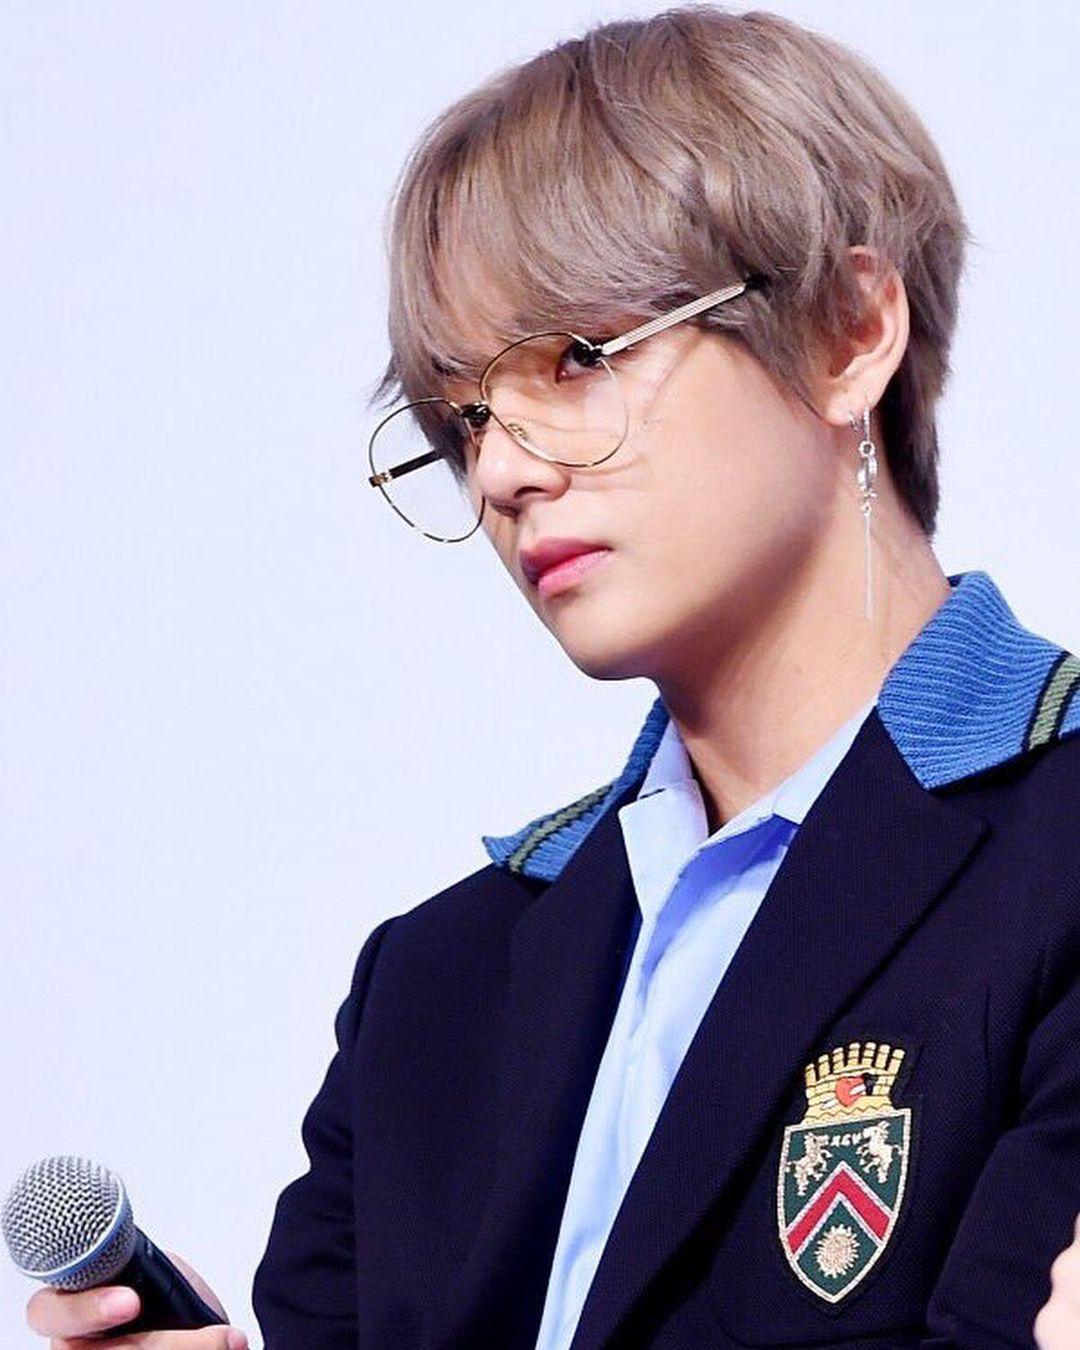 Most Handsome K Pop Male Idols Bts V Kim Tae Hyung Kpop K Pop Music K Pop Boy Groups Best K Pop Boy Bands Top K Pop Bo Taehyung Bts V V Taehyung